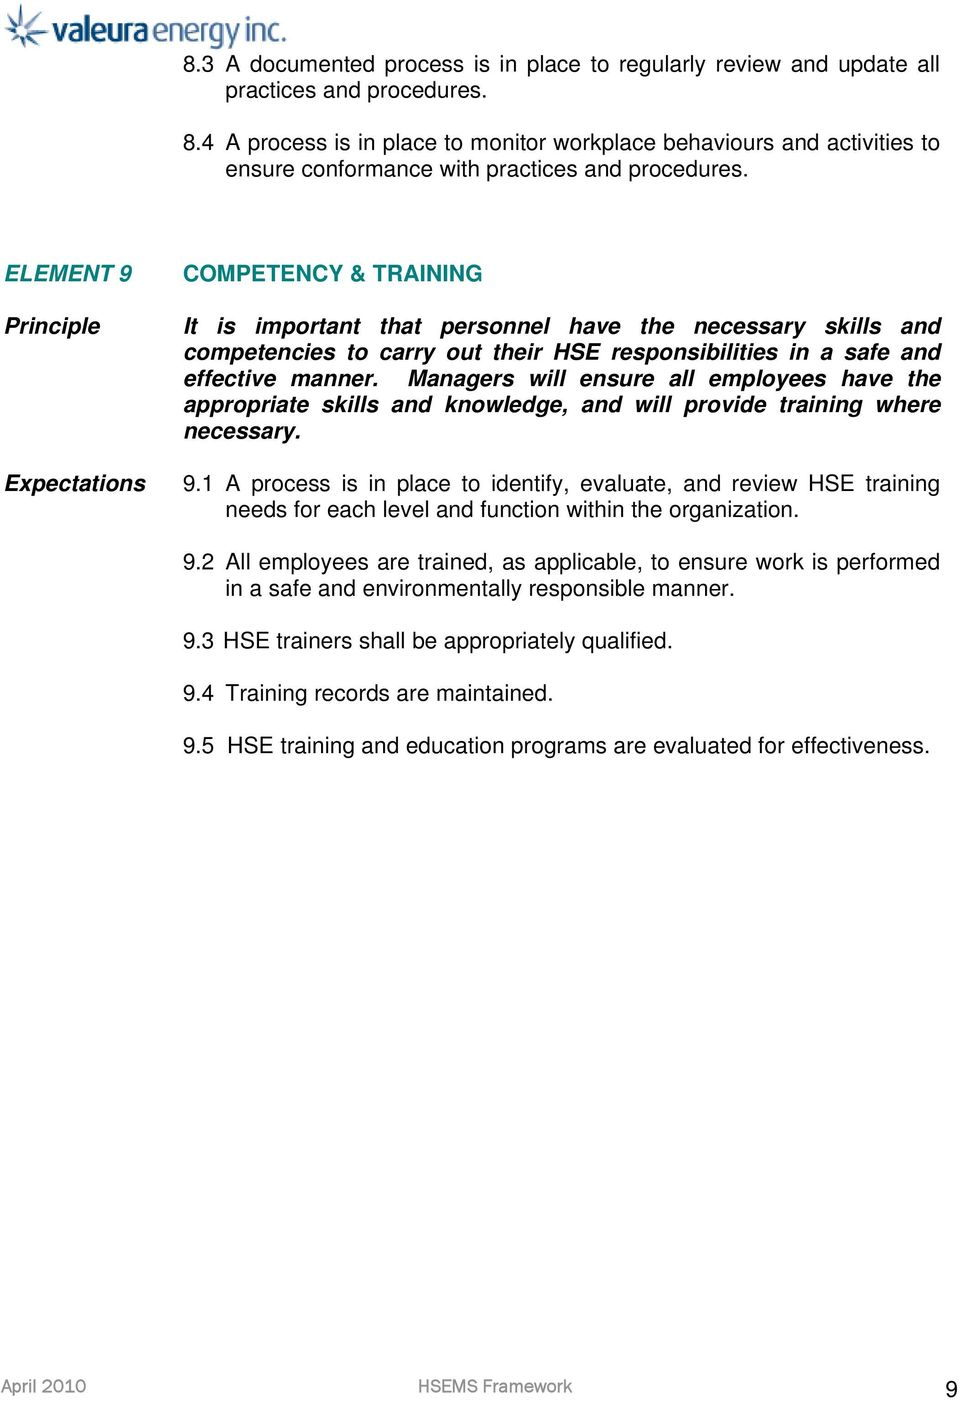 ELEMENT 9 COMPETENCY & TRAINING It is important that personnel have the necessary skills and competencies to carry out their HSE responsibilities in a safe and effective manner.